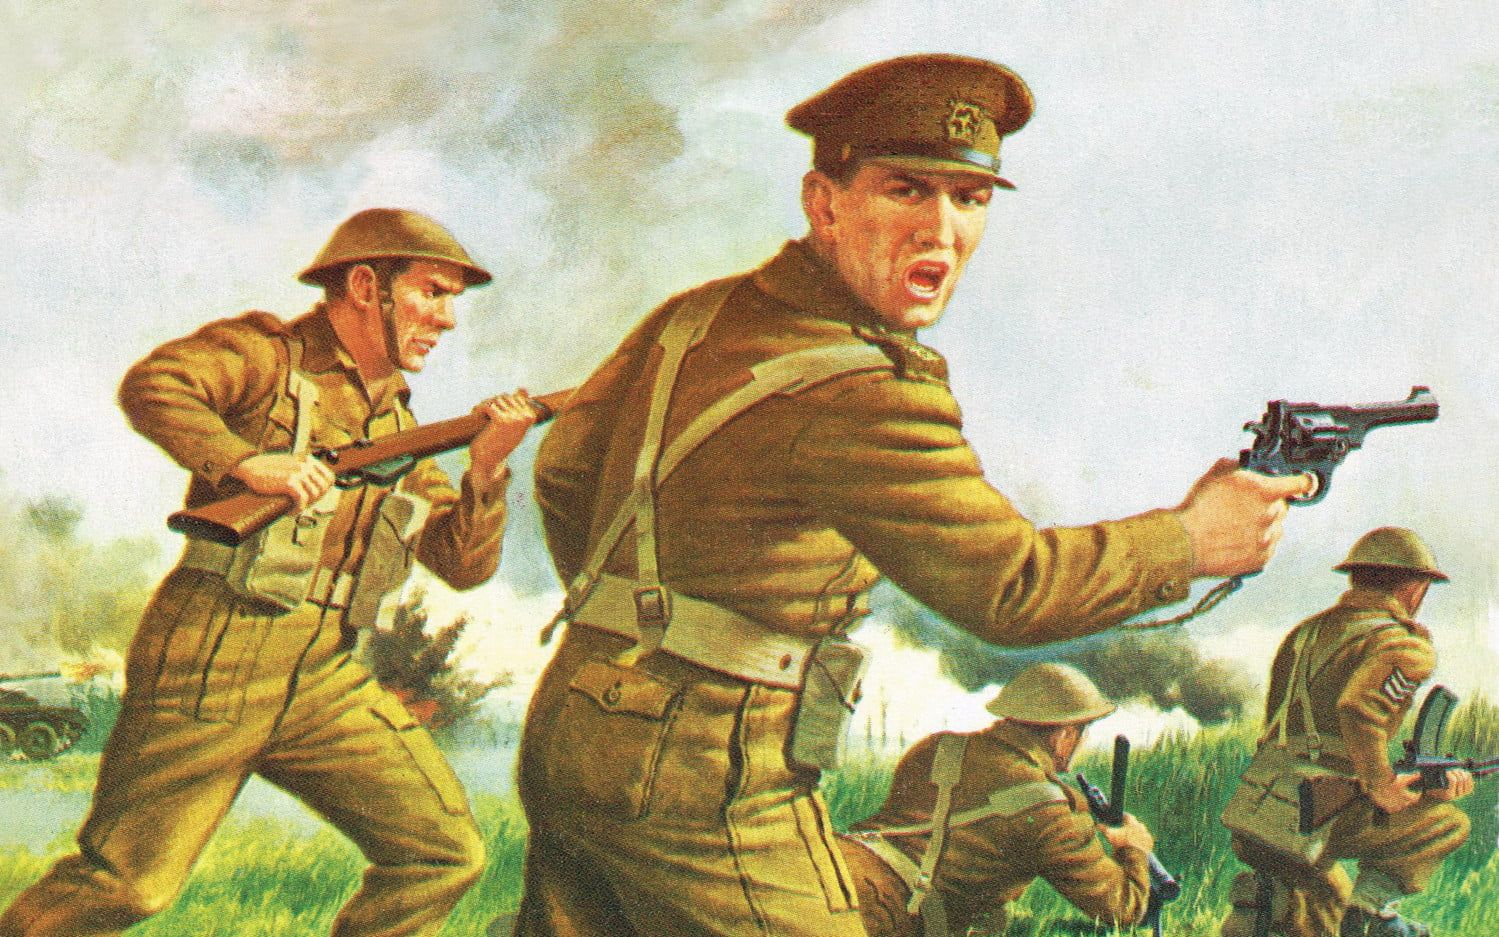 Airfix WWII British Infantry 1:76 Scale Plastic Model Kit